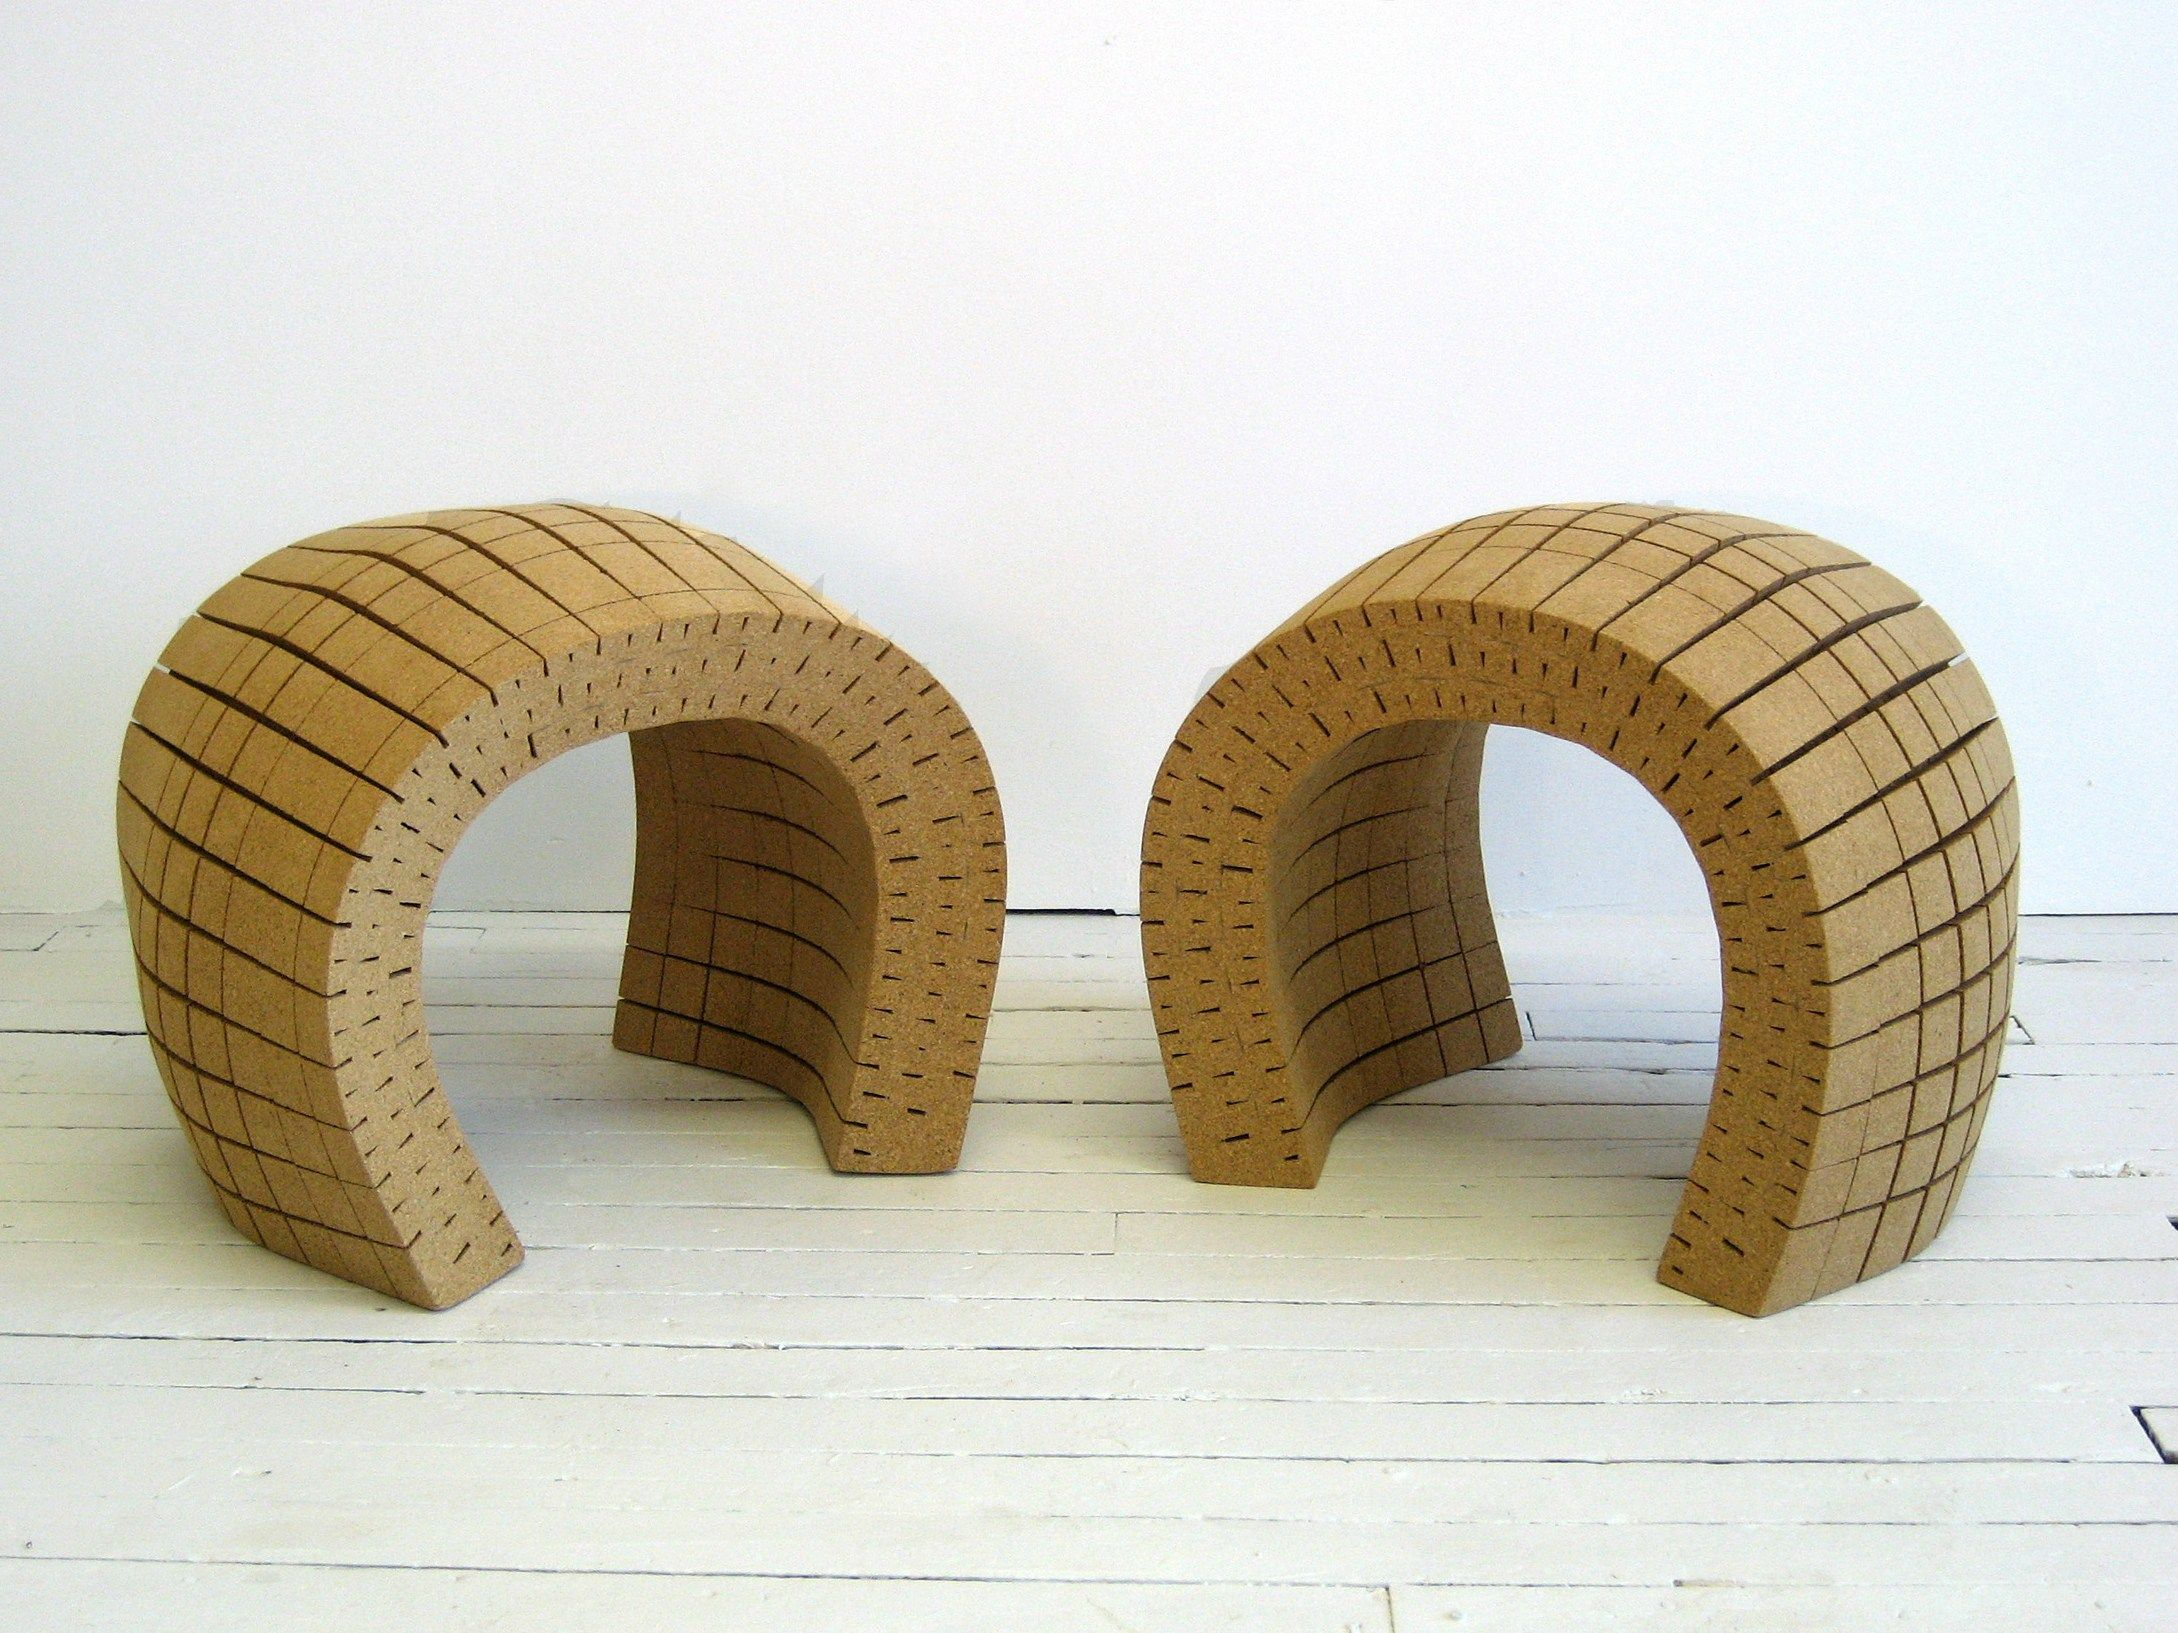 Kork Möbel Niedriger Hocker Aus Kork Minhoca By Daniel Michalik Furniture